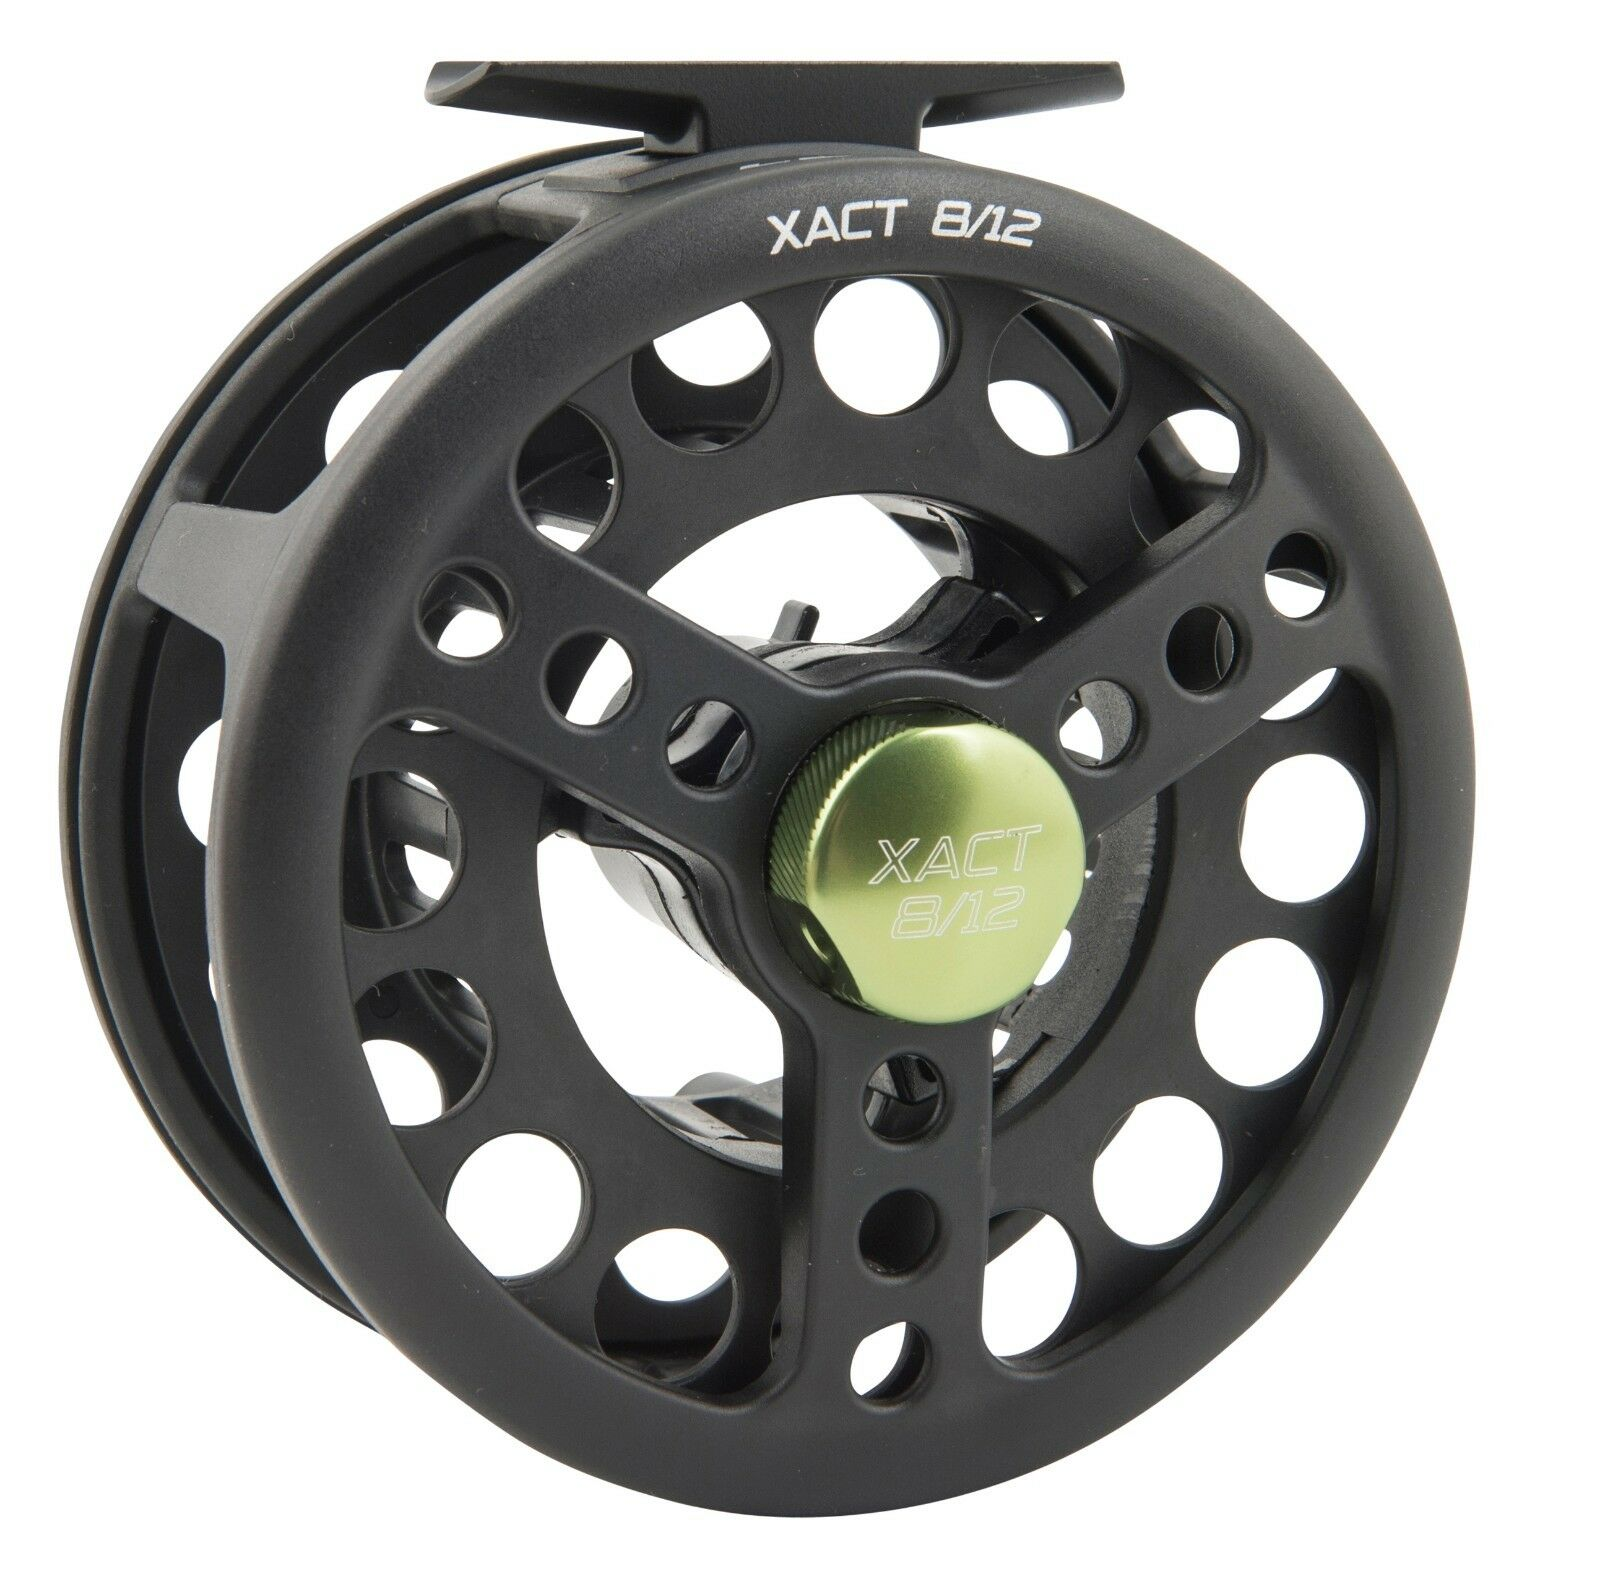 LOOP Fly Reel Xact 8-12 Fly Fishing Reel Right hand retrieve New discontinued